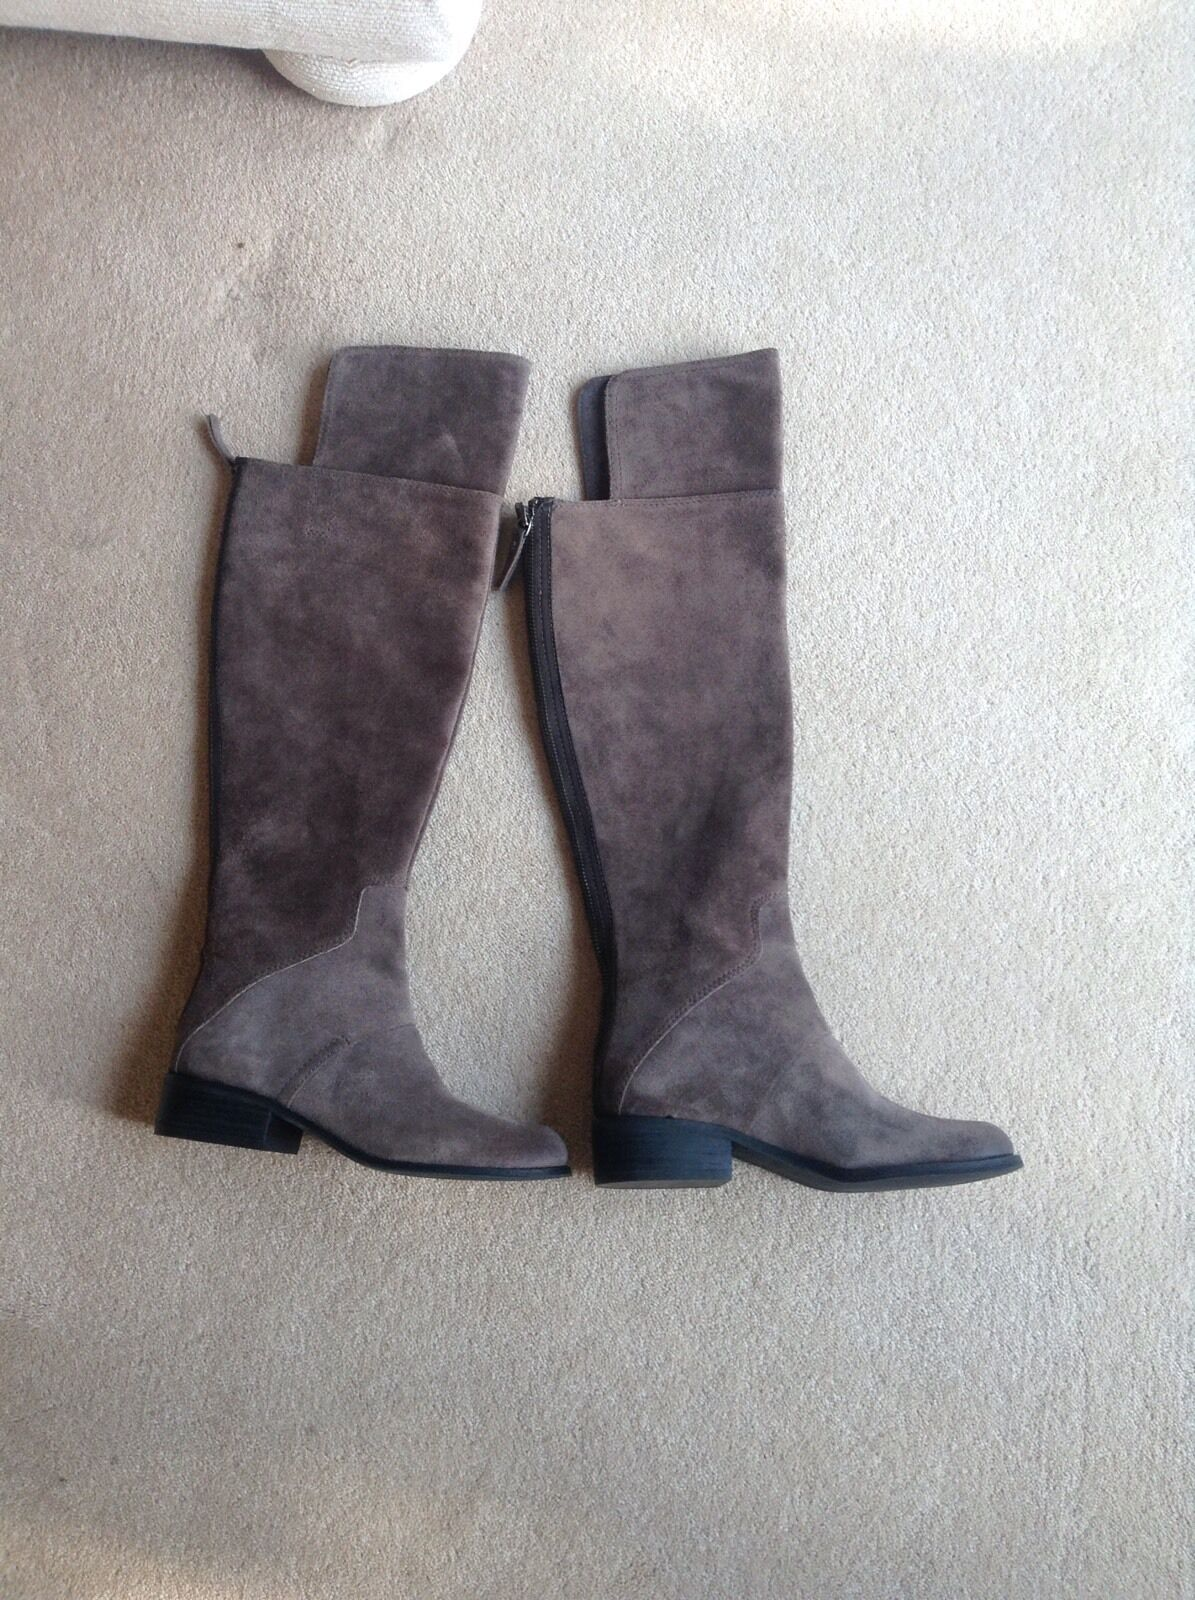 NINE WEST BRAND NEW Stiefel OVER THE KNEE GREY 5M SUEDE SIZE 3 USA 5M GREY 7597df